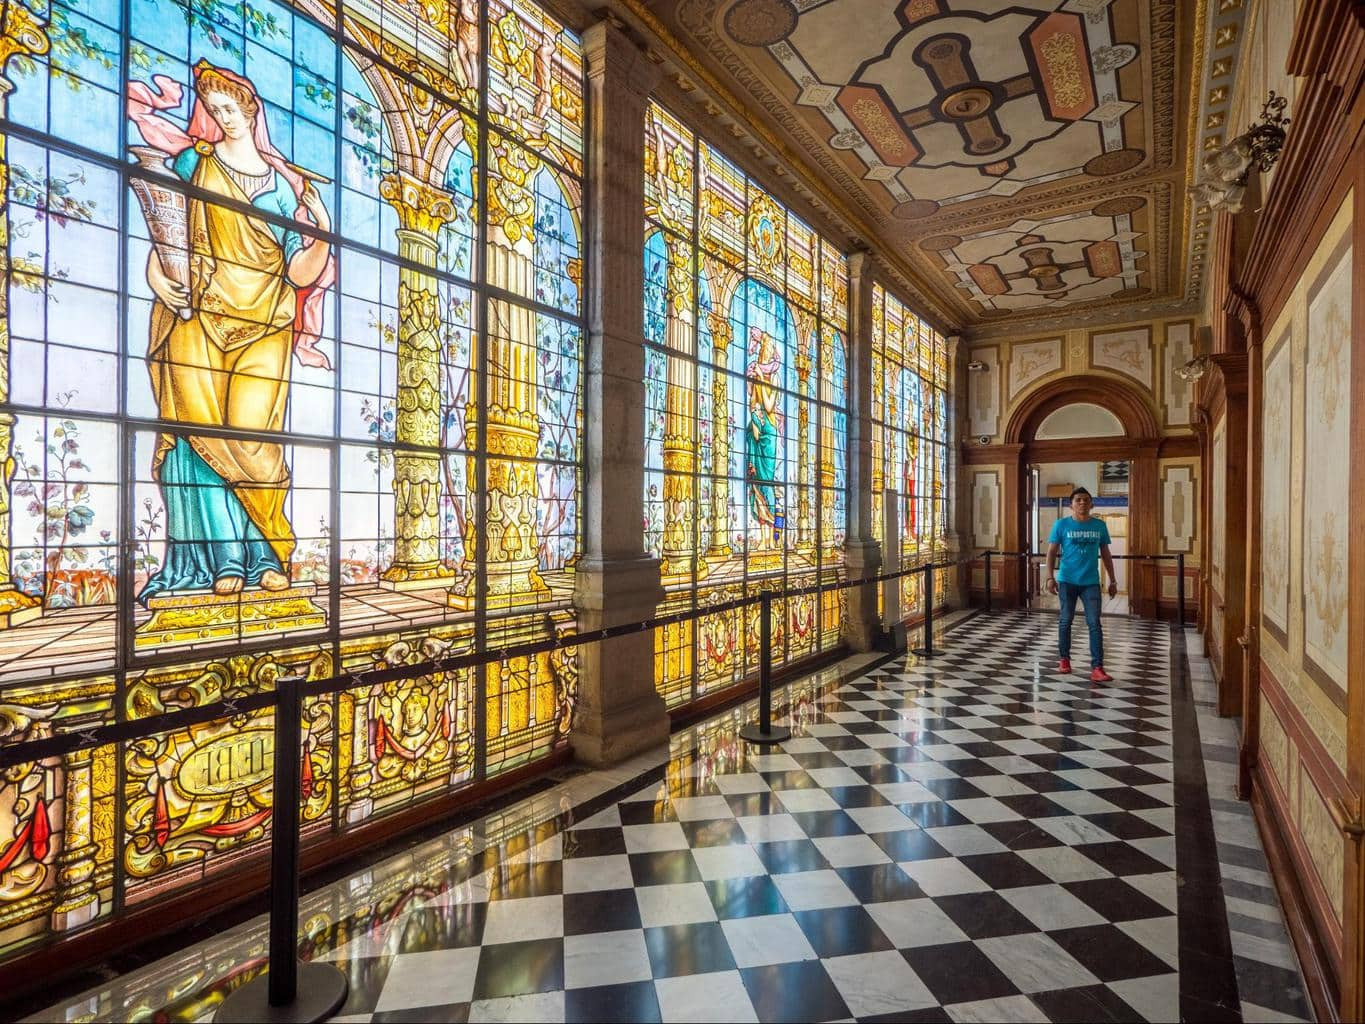 The beautiful stained glass in Chapultepec Castle